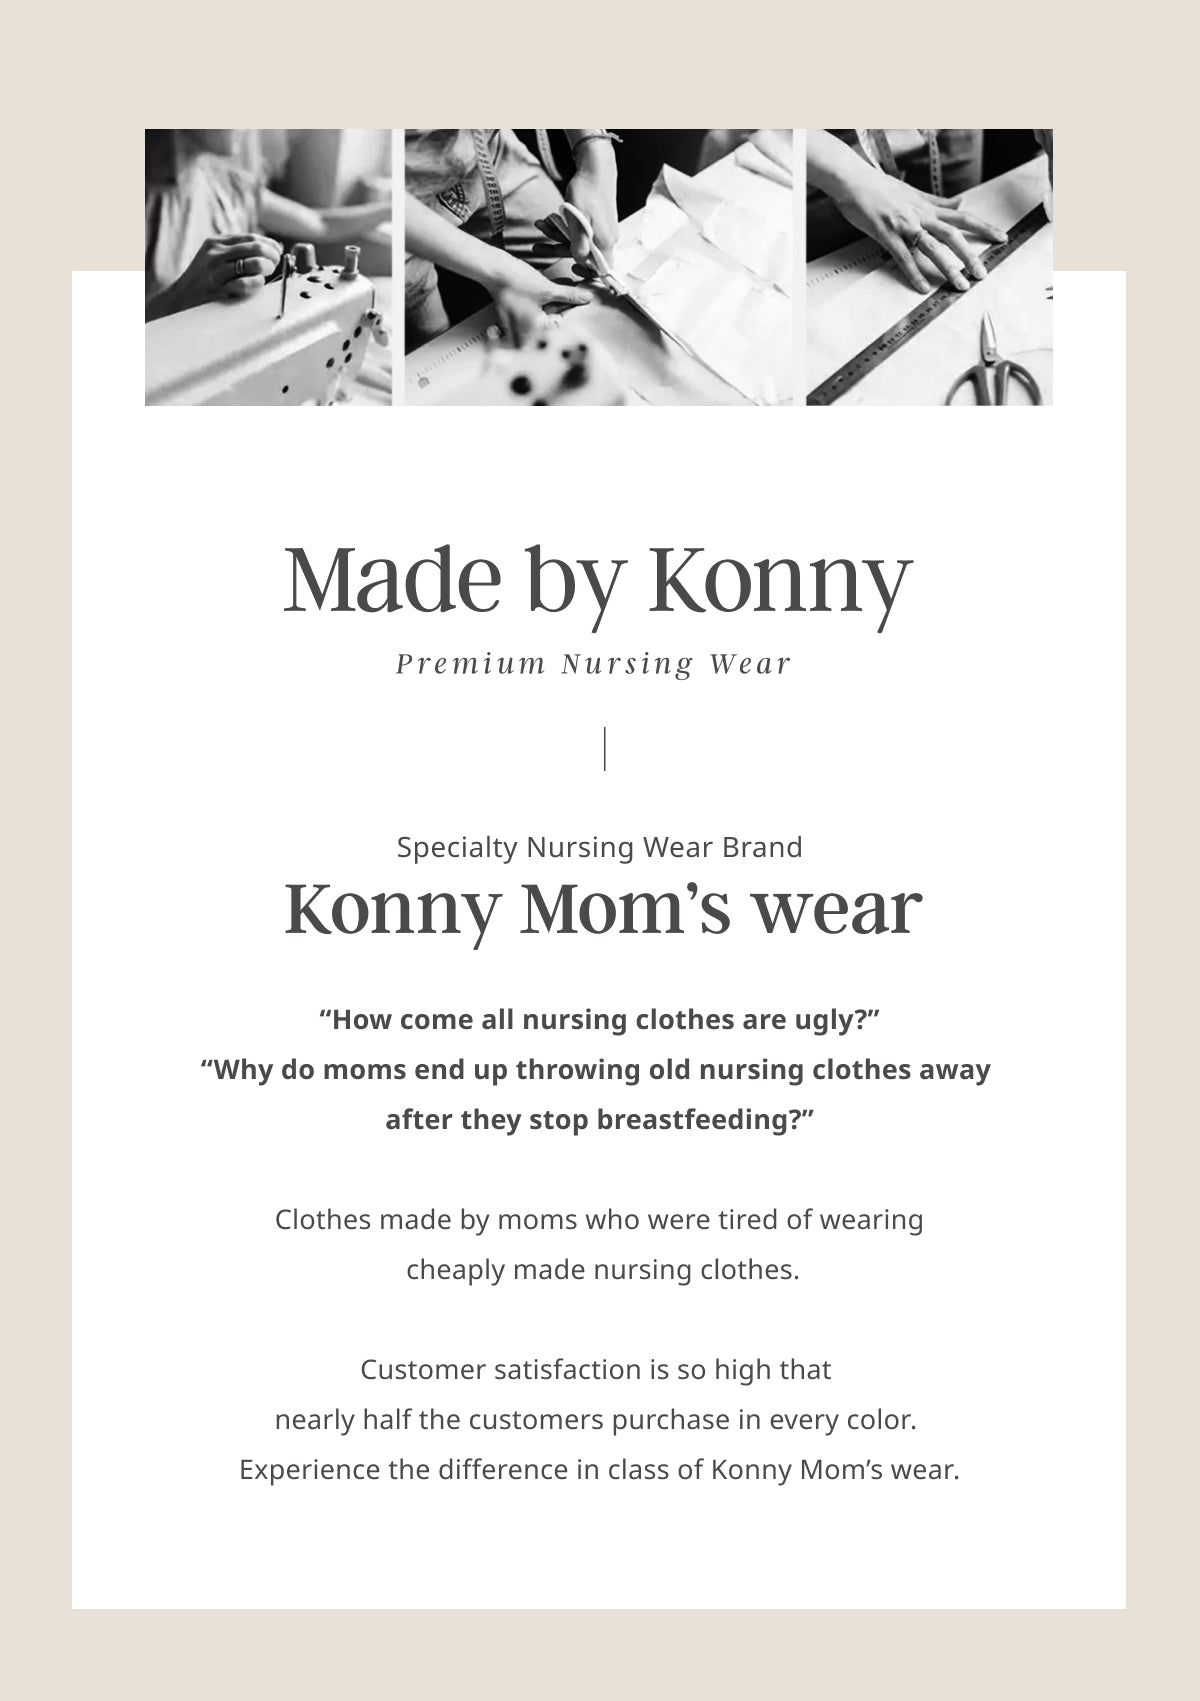 Premium nursing wear, Konny Mom's Wear. From new moms who just started breastfeeding to pro moms who've completed nursing, childcare can become easier and stylish with Konny mom's wear that brightens up your moments with baby. Experience the difference in class of Konny Mom's Wear.